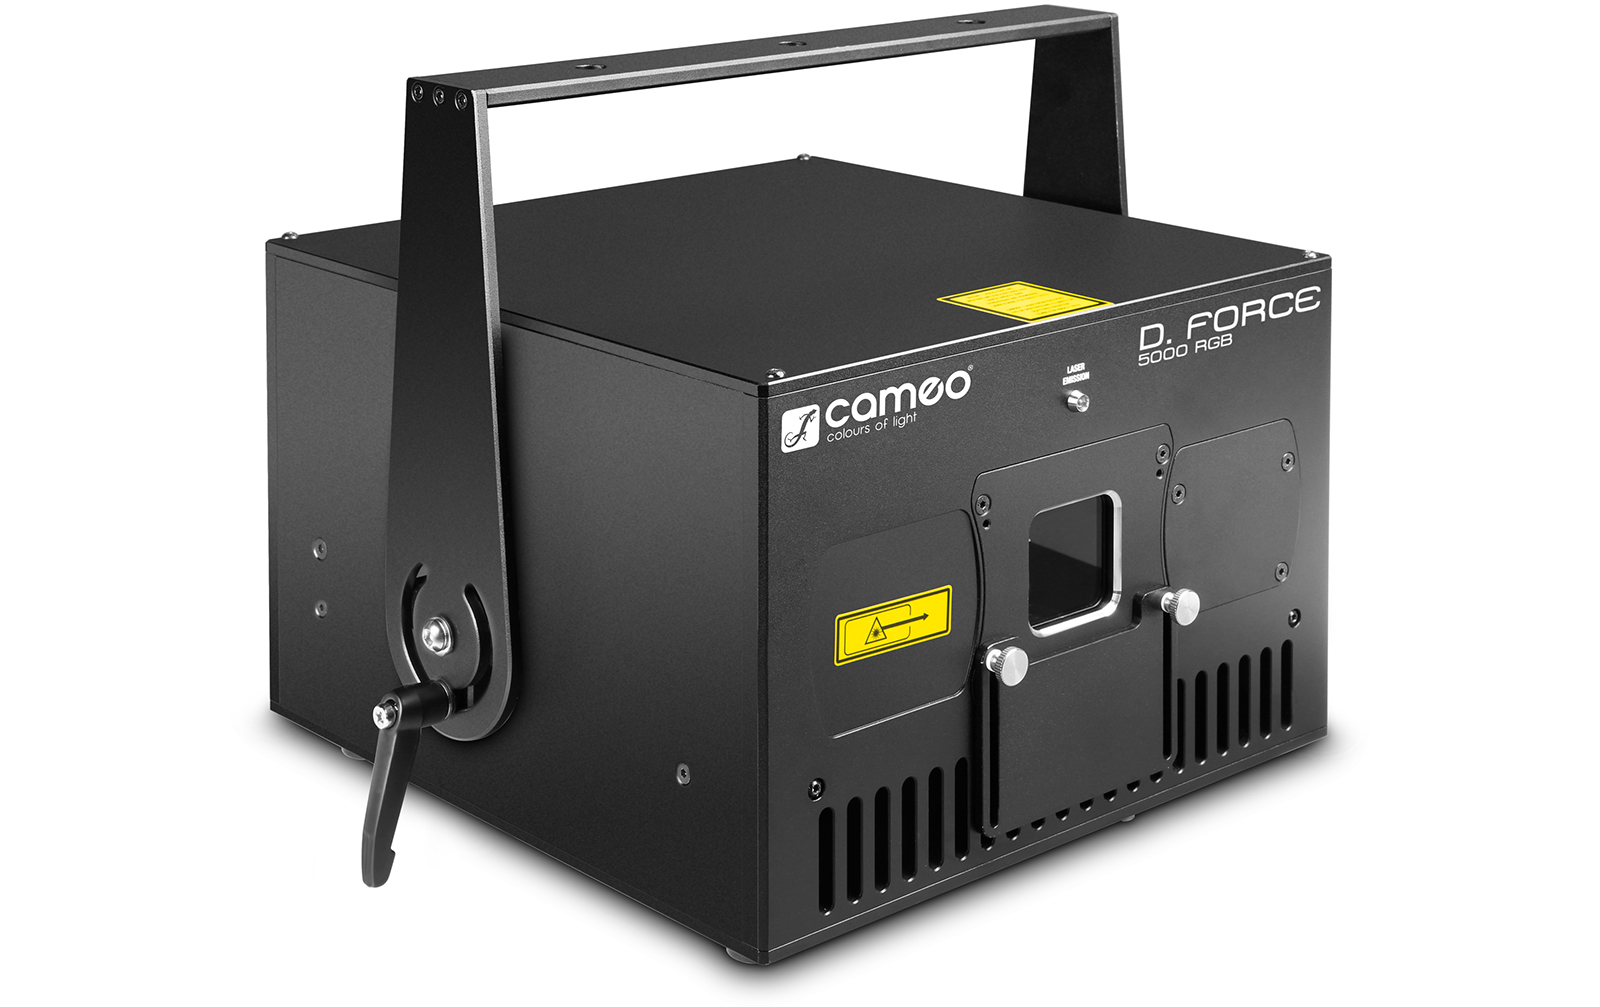 cameo-d-force-5000-rgb-professioneller-dioden-showlaser